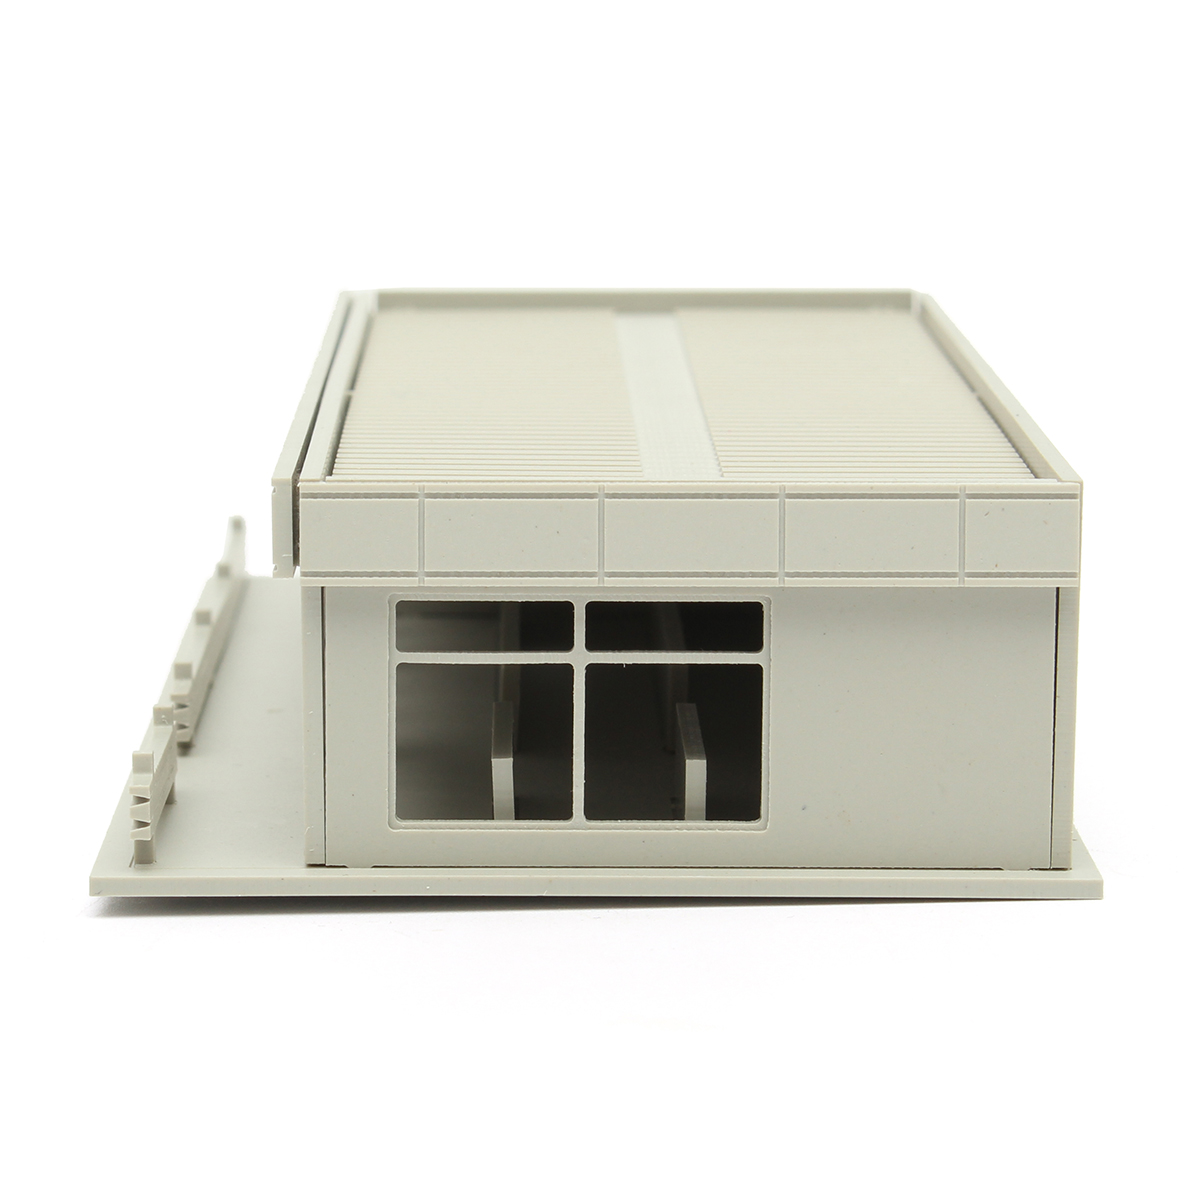 Outland Models Modern City Roadside Convenience Store Toy For GUNDAM Building